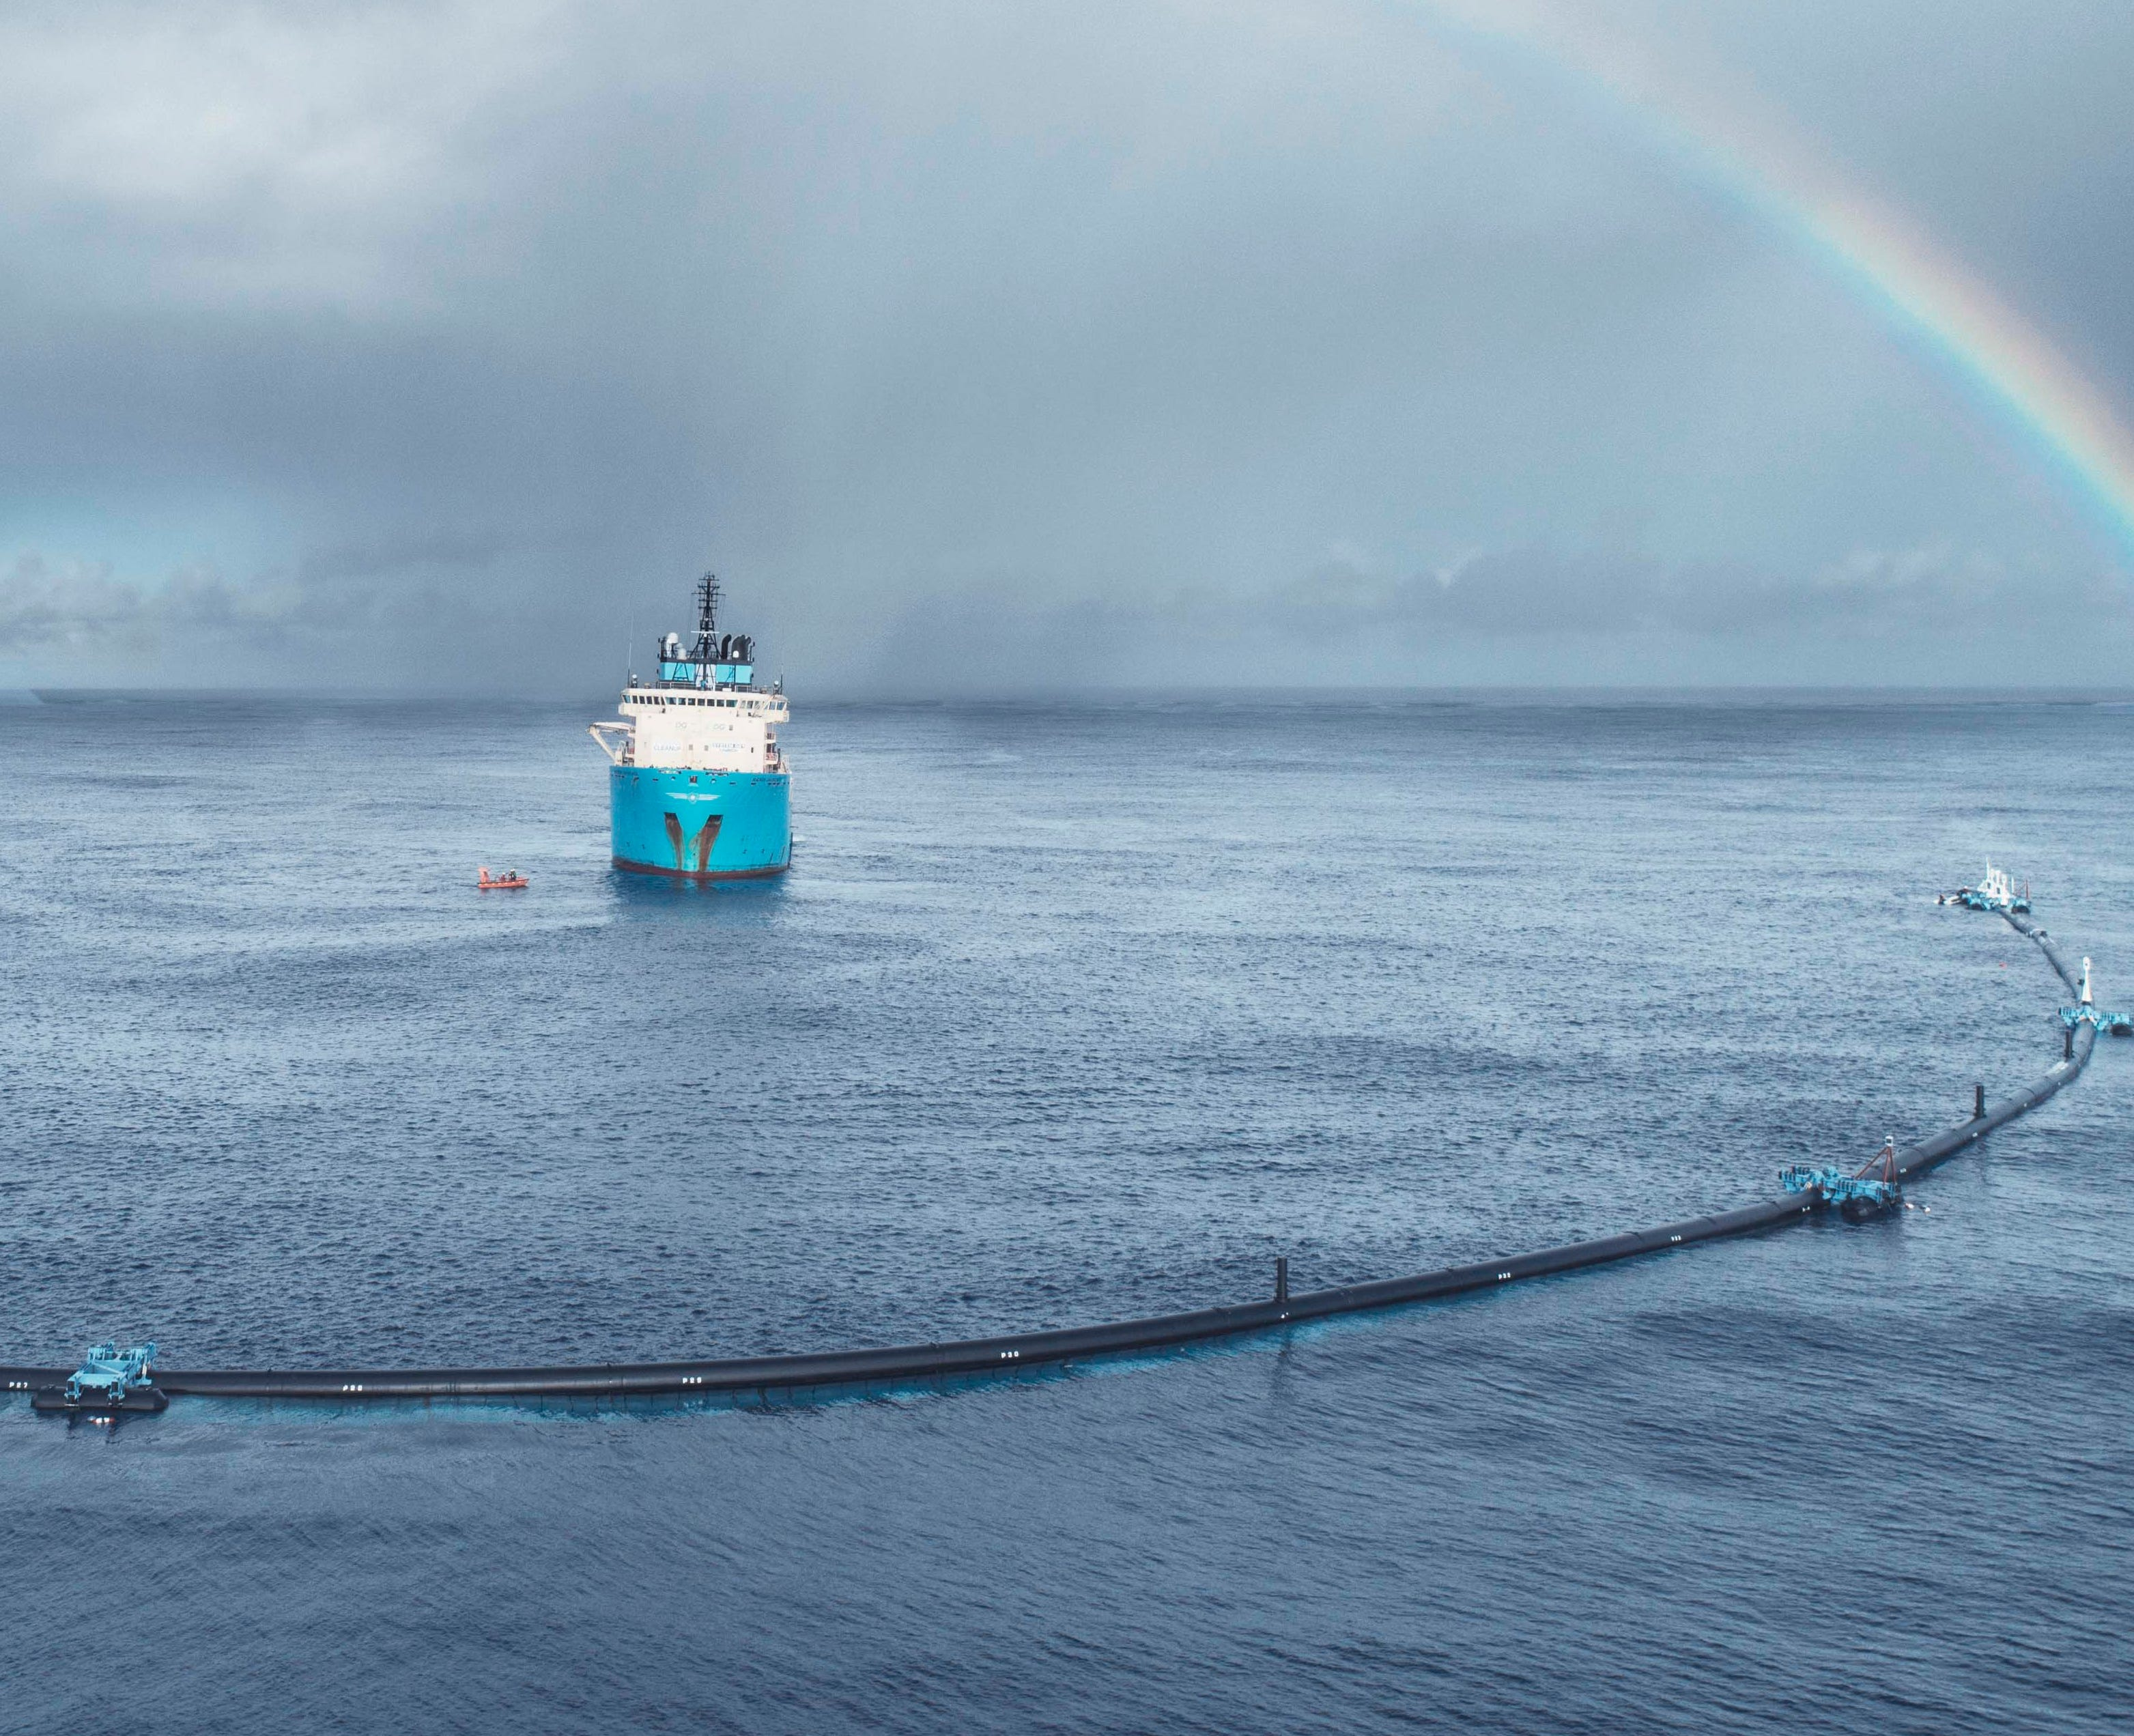 The Ocean Cleanup system deployed in the Great Pacific Garbage Patch to sweep up plastic trash at the ocean's surface.